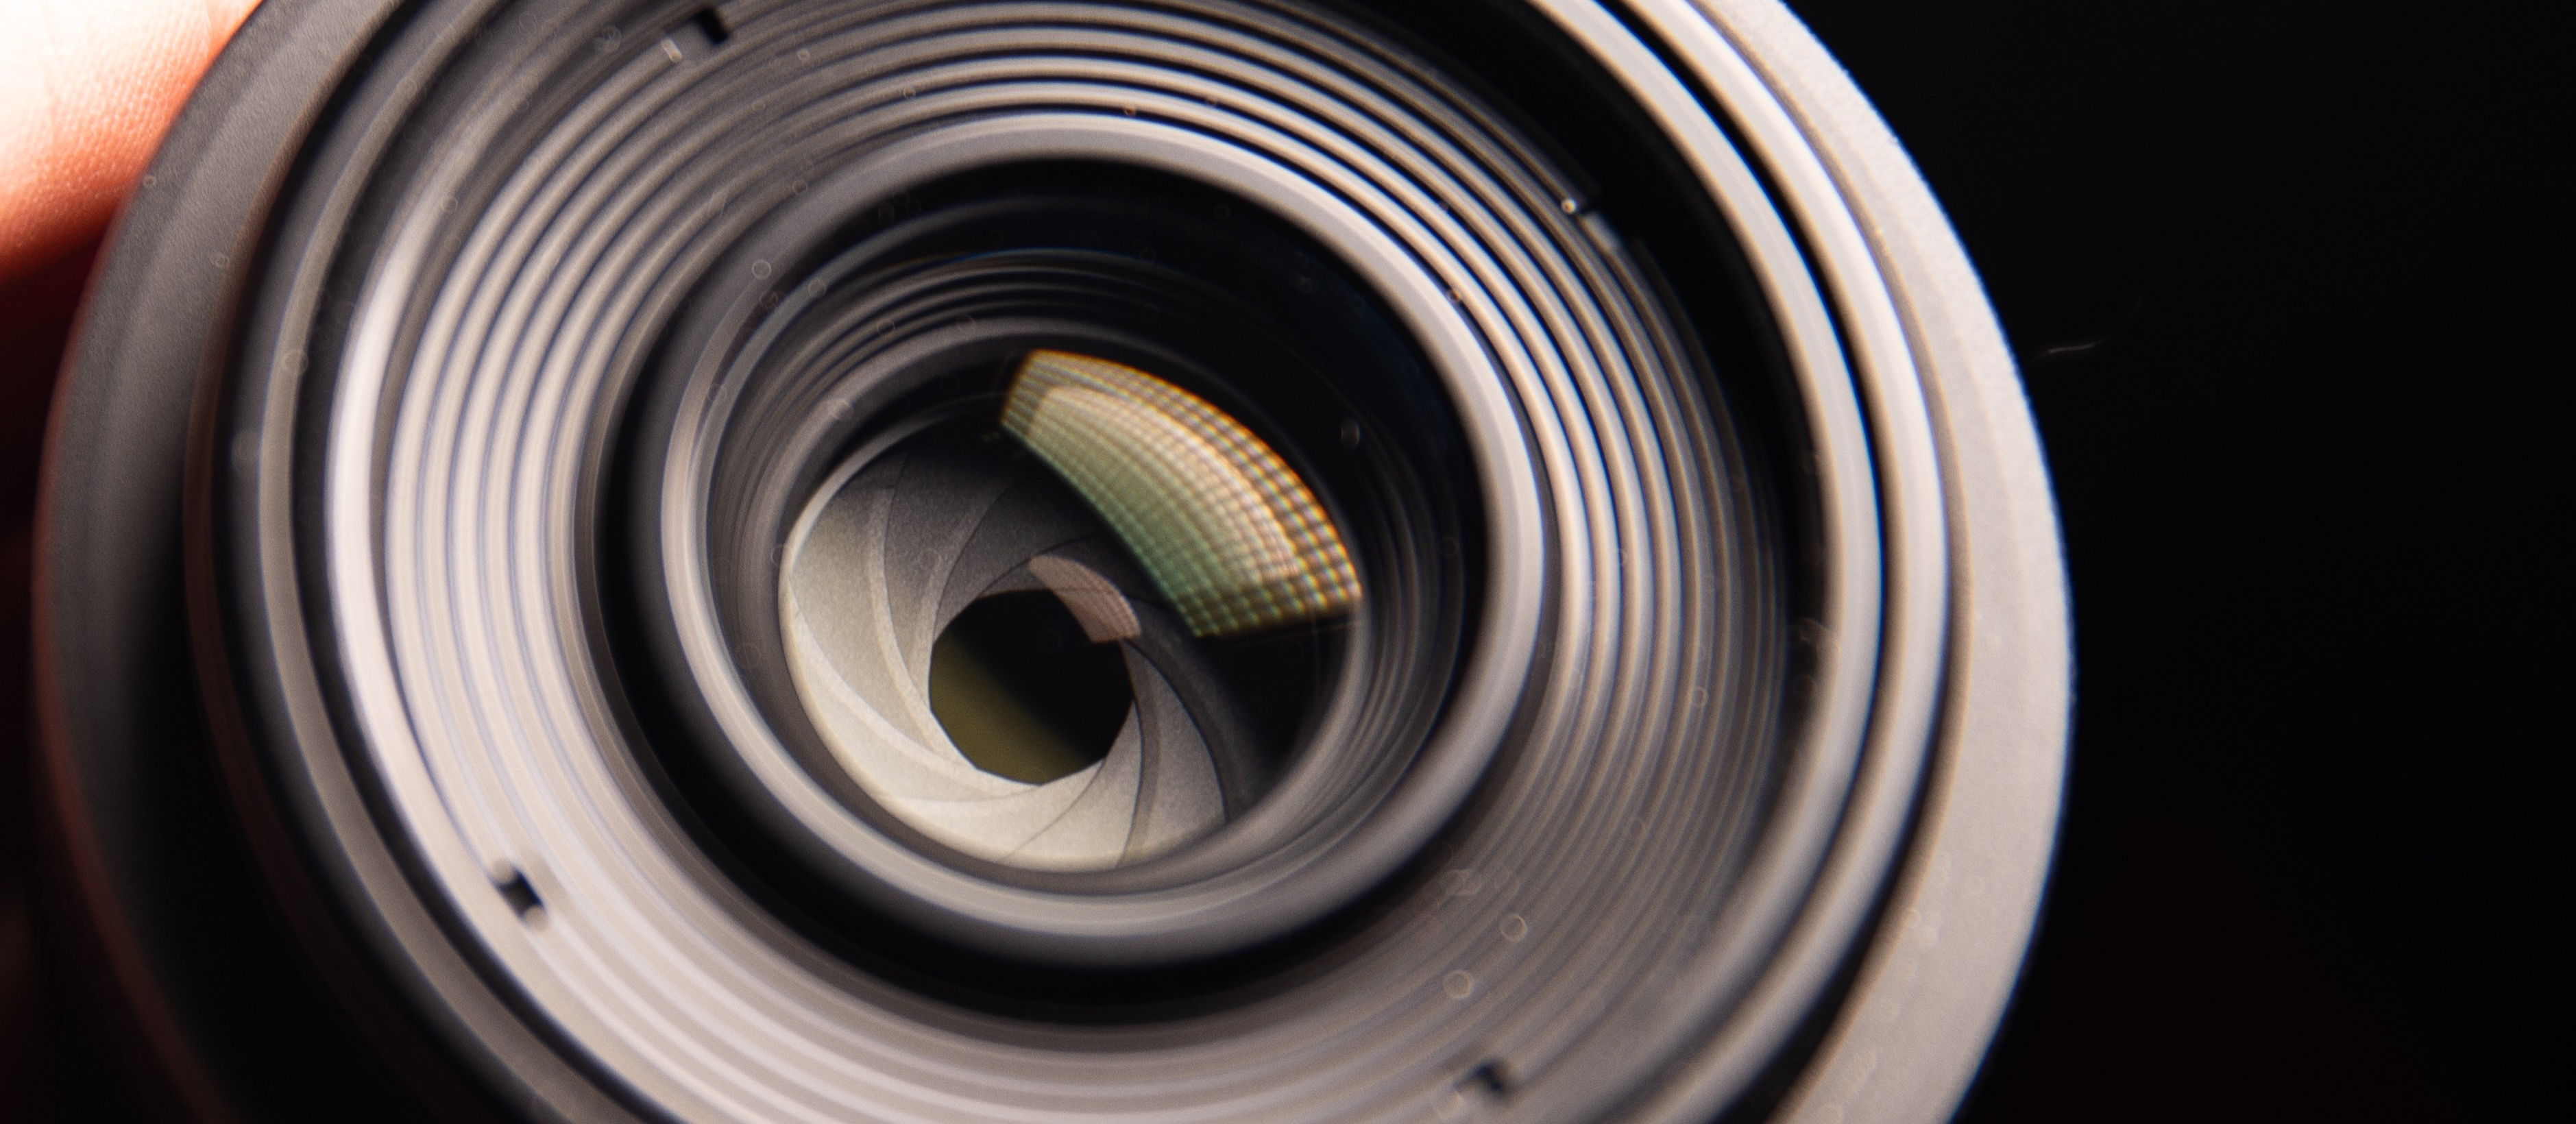 aperture in photography to effect depth of field and exposure in photography